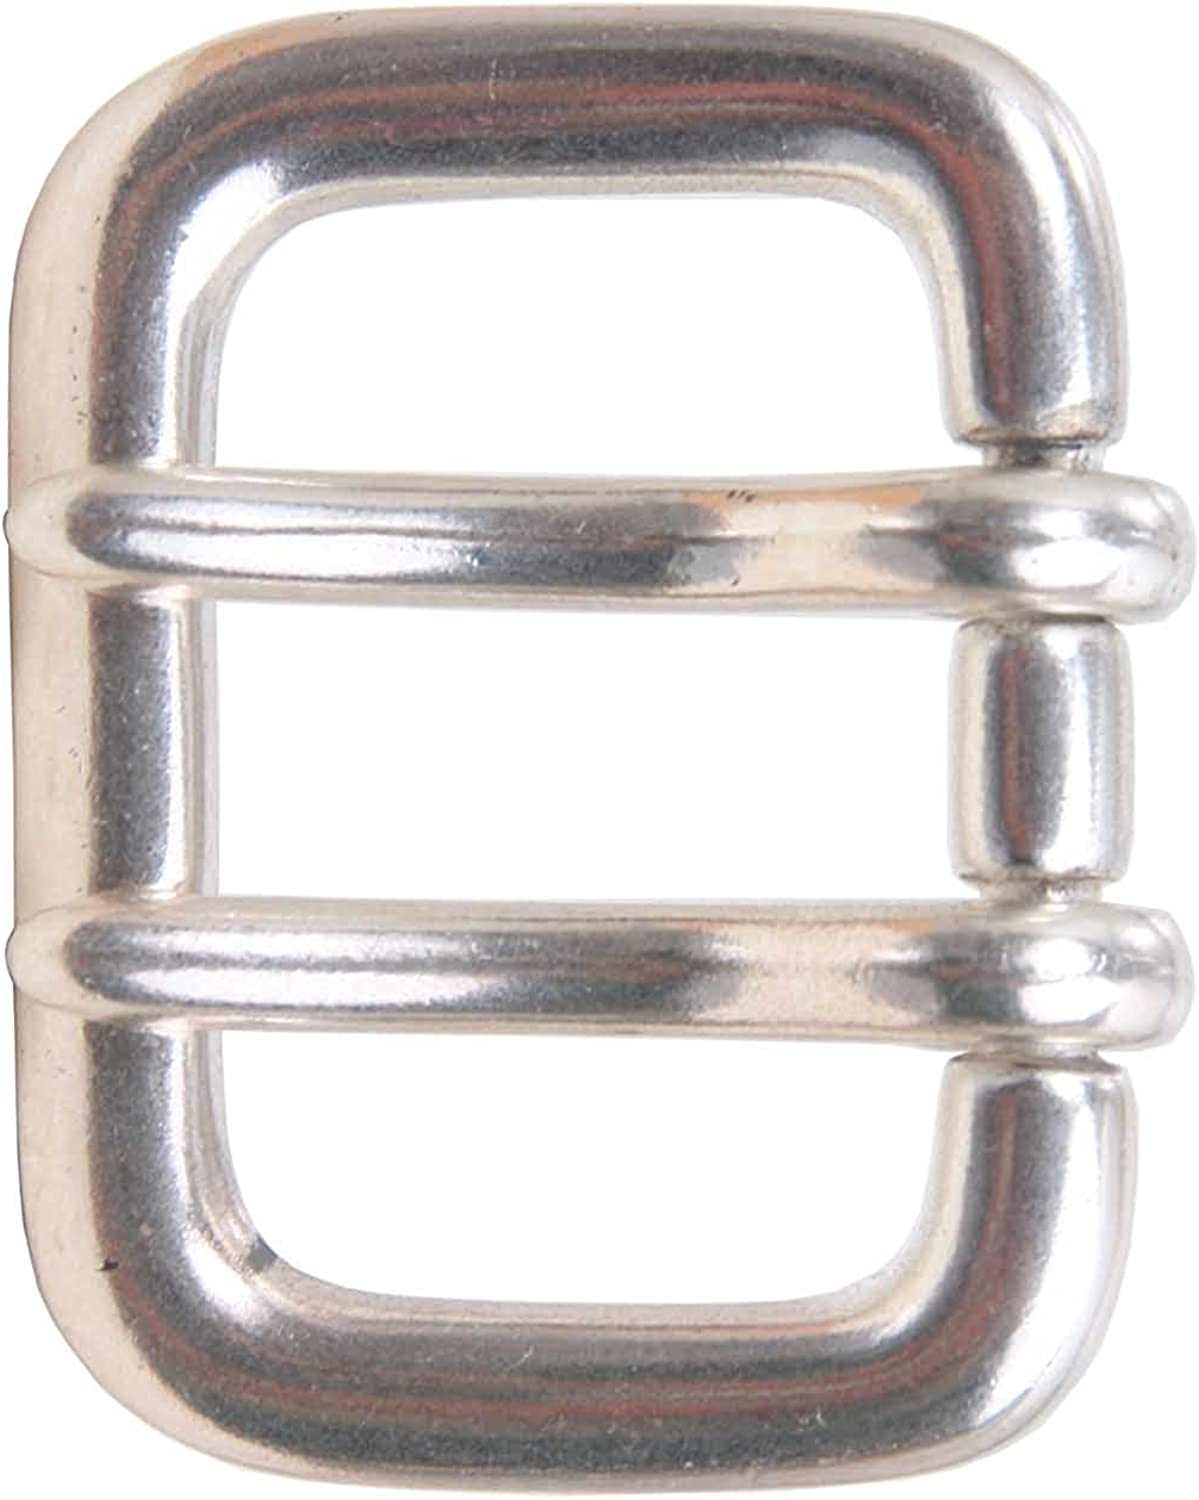 MONIQUE Women Sterling Silver Finish Double Prong 1.5 Belt Replacement Buckle